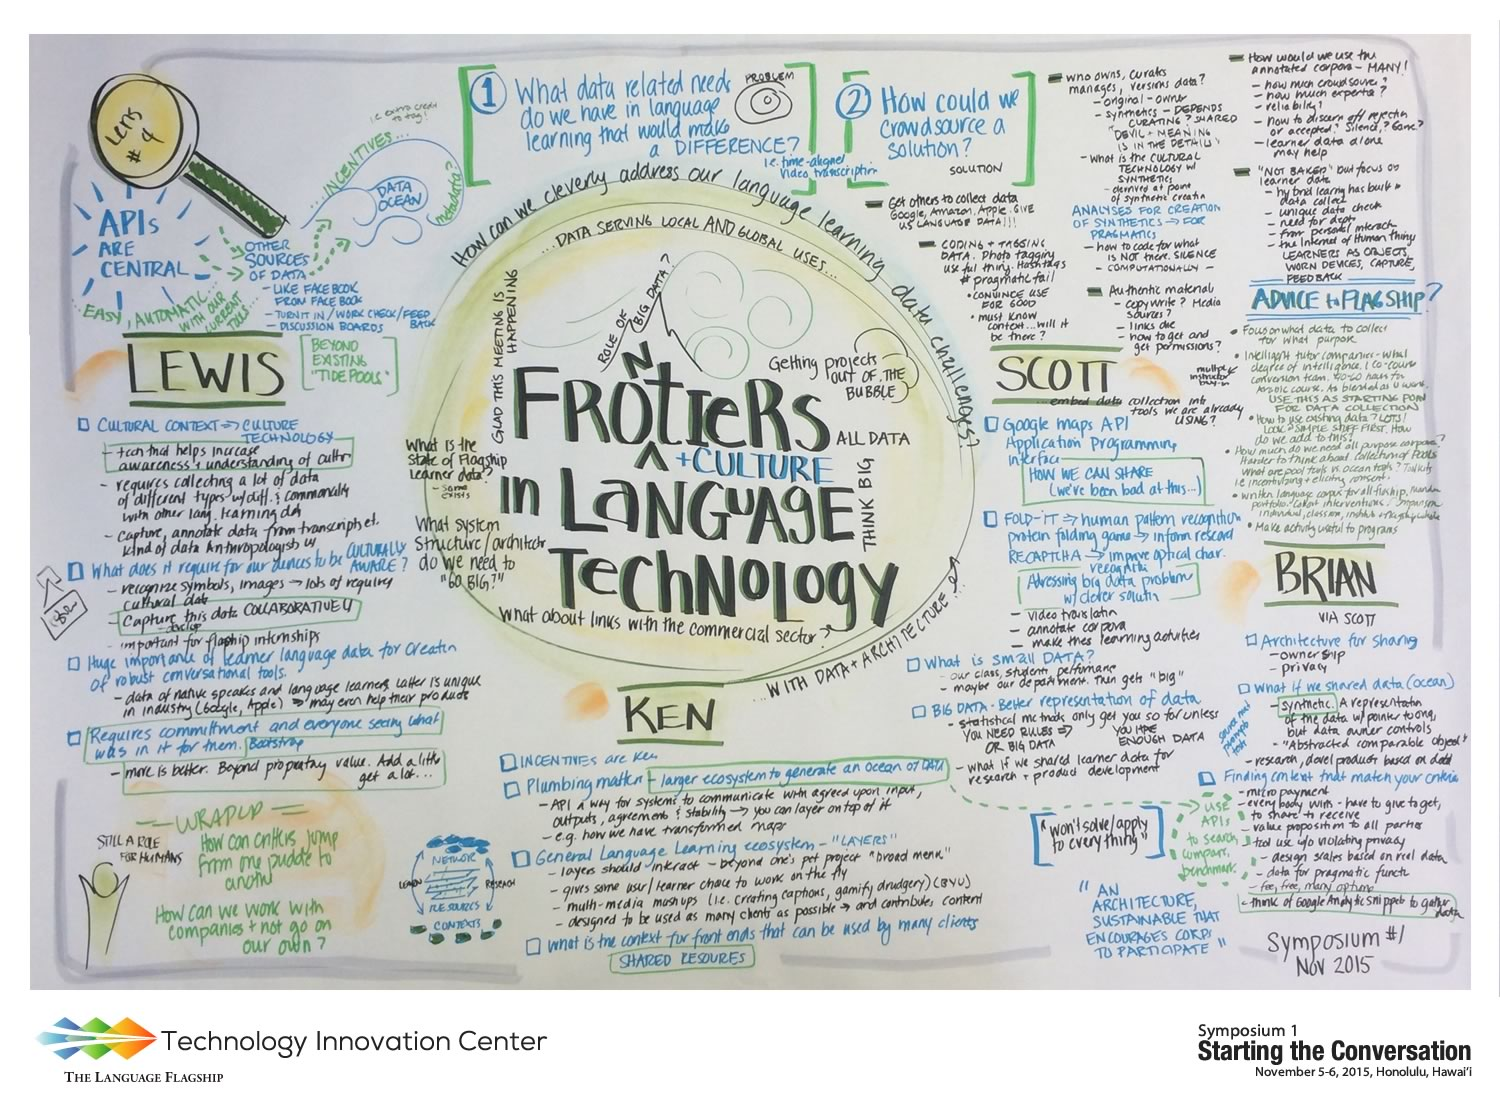 Dr. Payne Frontiers in Language Technology Symposium Poster